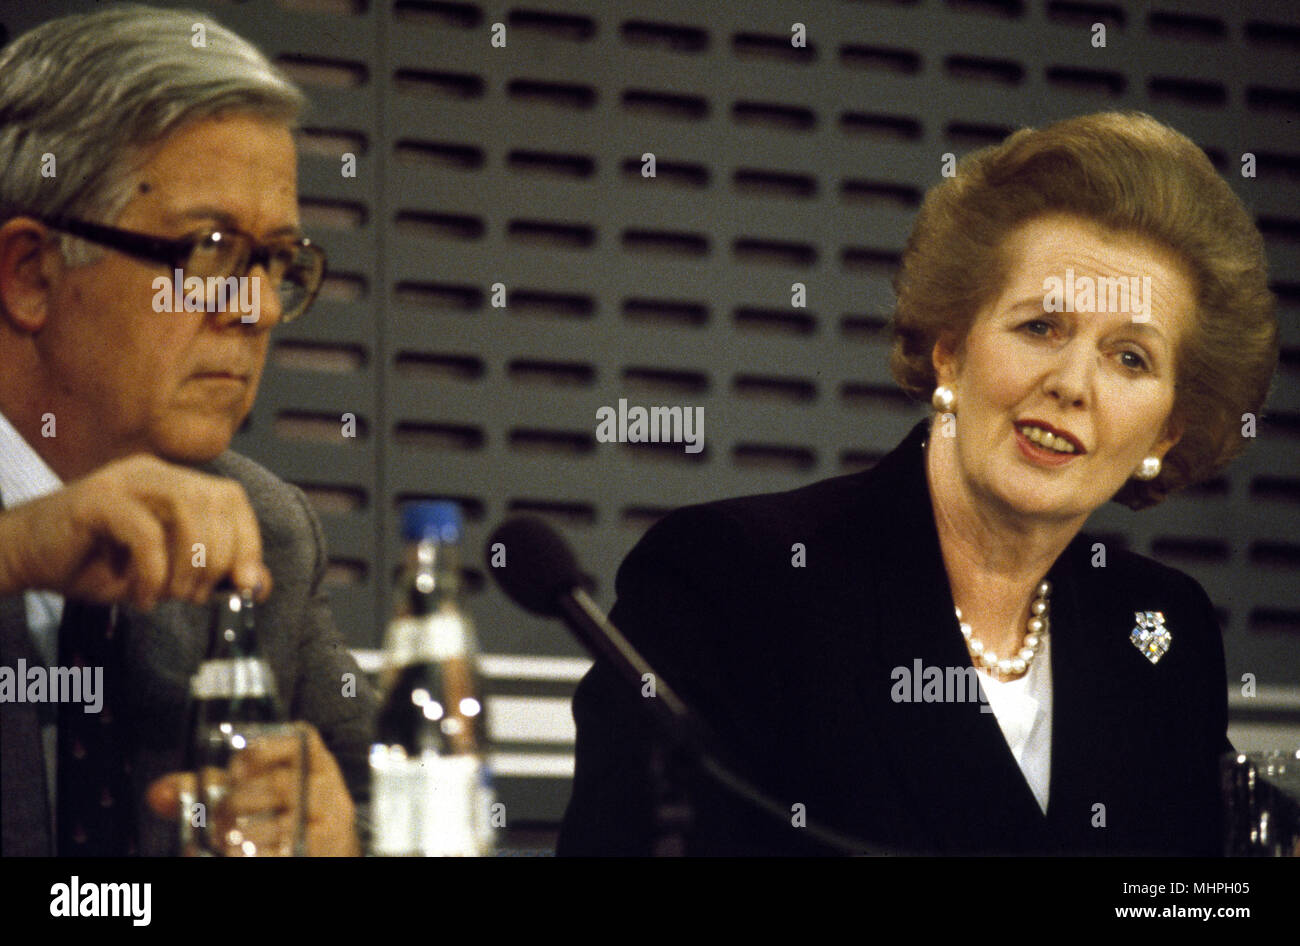 Margaret Thatcher (British Prime Minister) and Geoffrey Howe (Foreign Secretary) at a press conference in London, soon after an important visit by Mikhail Gorbachev, Russian President.      Date: circa 1984 - Stock Image